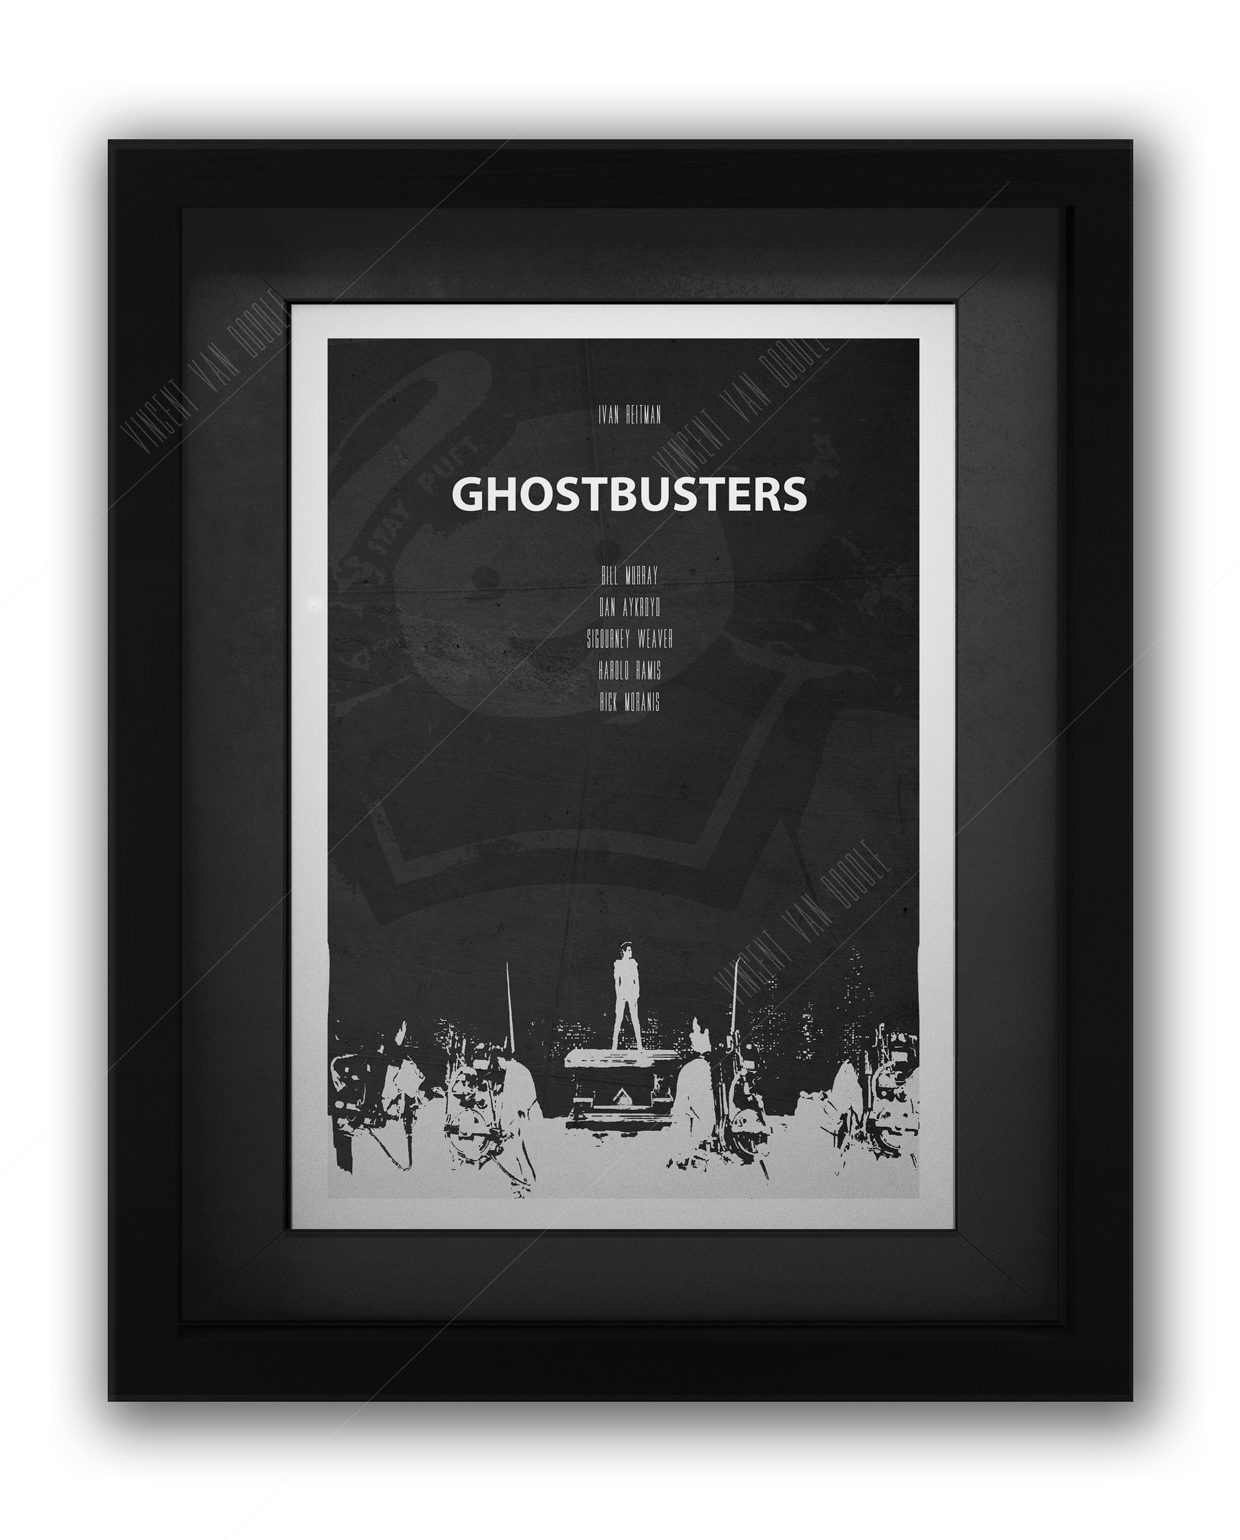 ghostbusters-framed